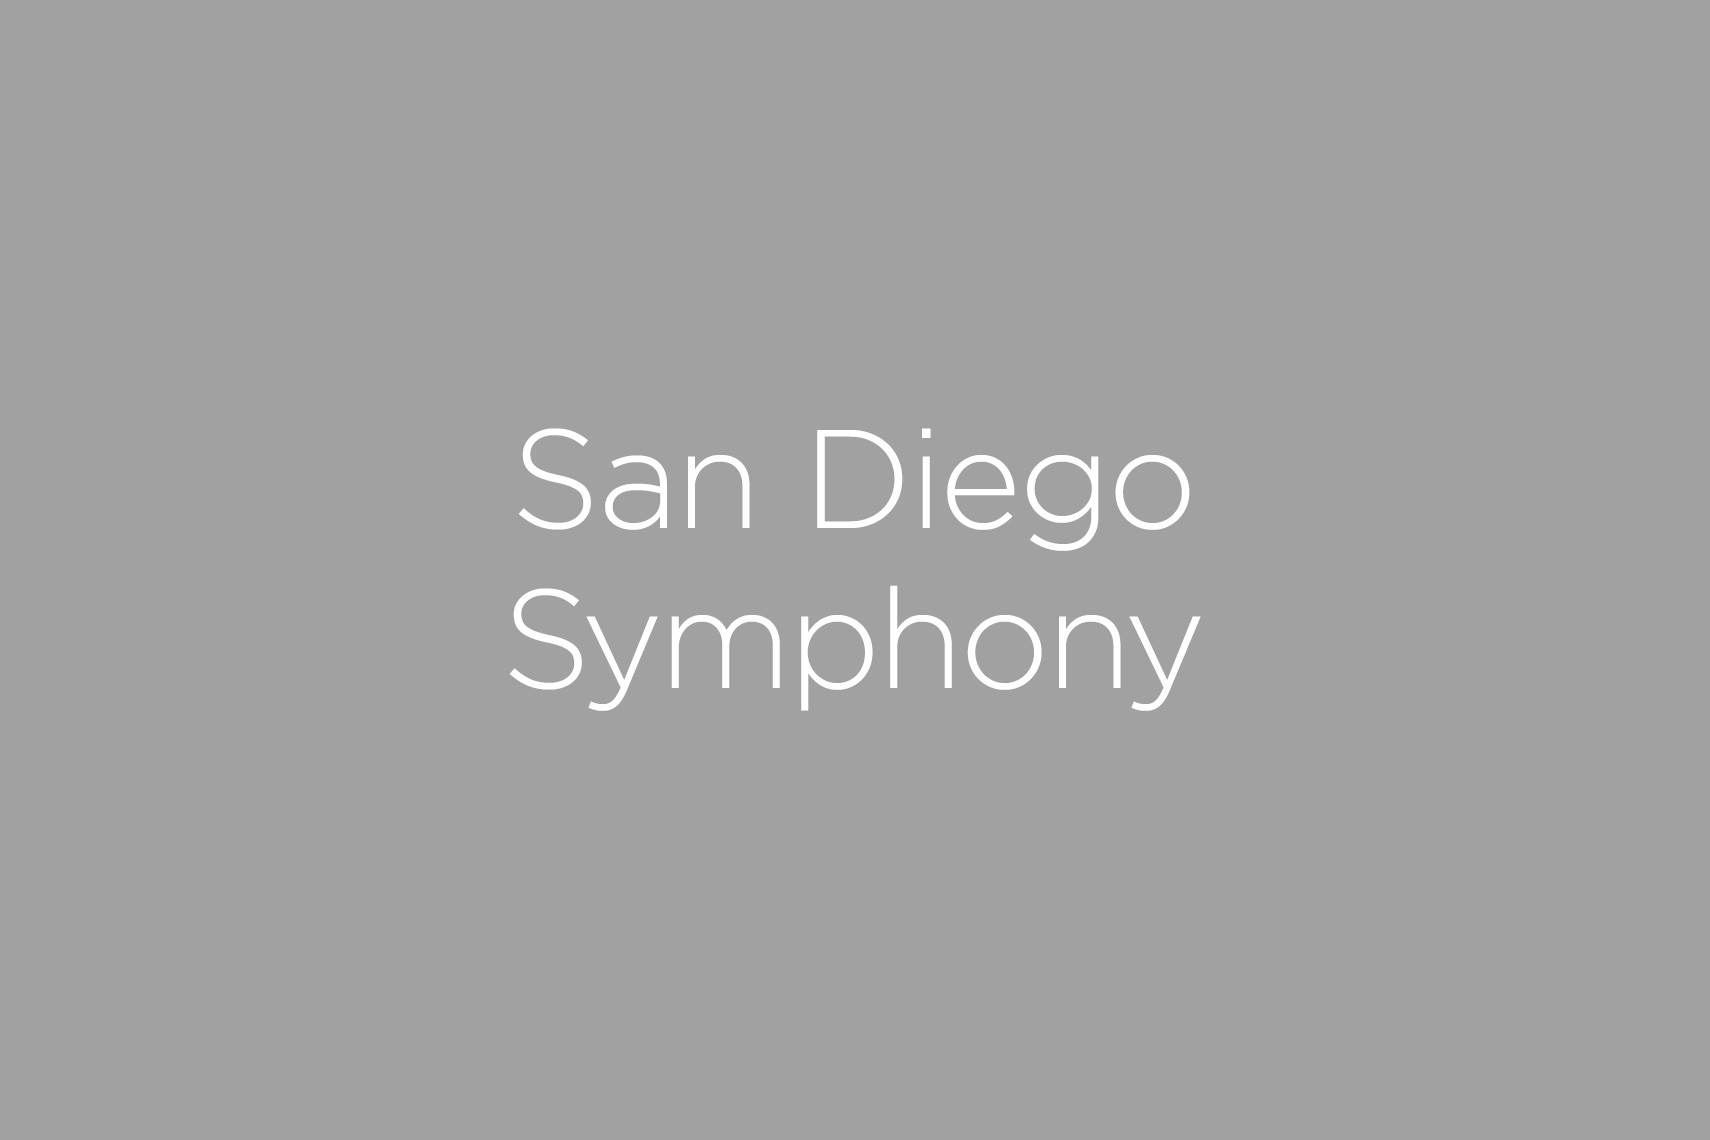 San Diego Symphony Photography Gallery